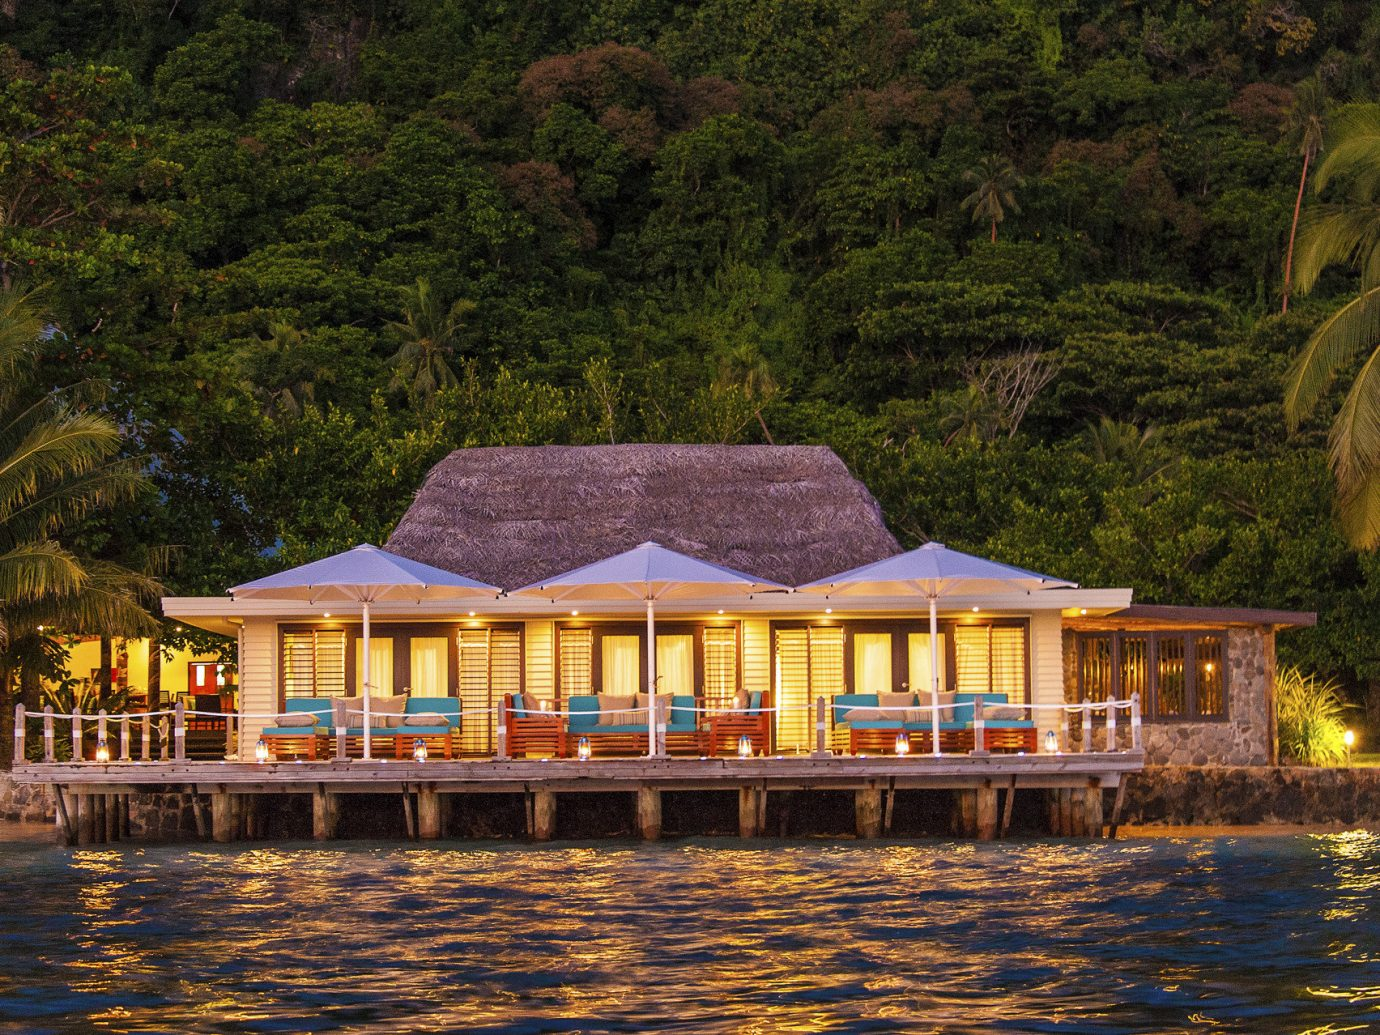 All-Inclusive Resorts Hotels Luxury Travel outdoor tree water house estate River boathouse Resort surrounded